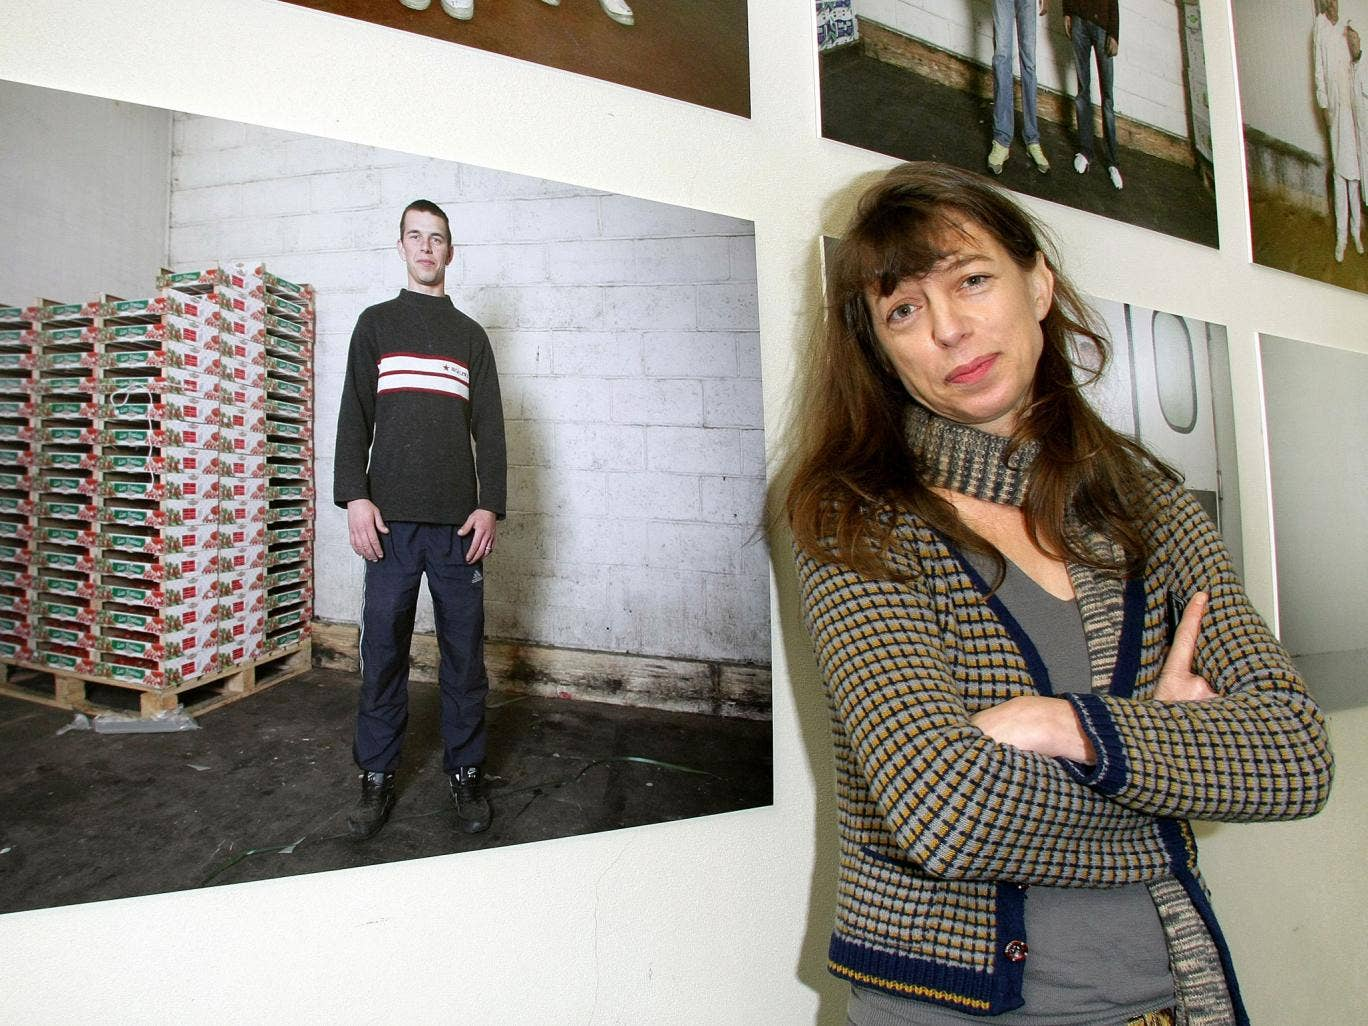 Barry in 2009 with pictures she had taken at the Rungis Market in Paris